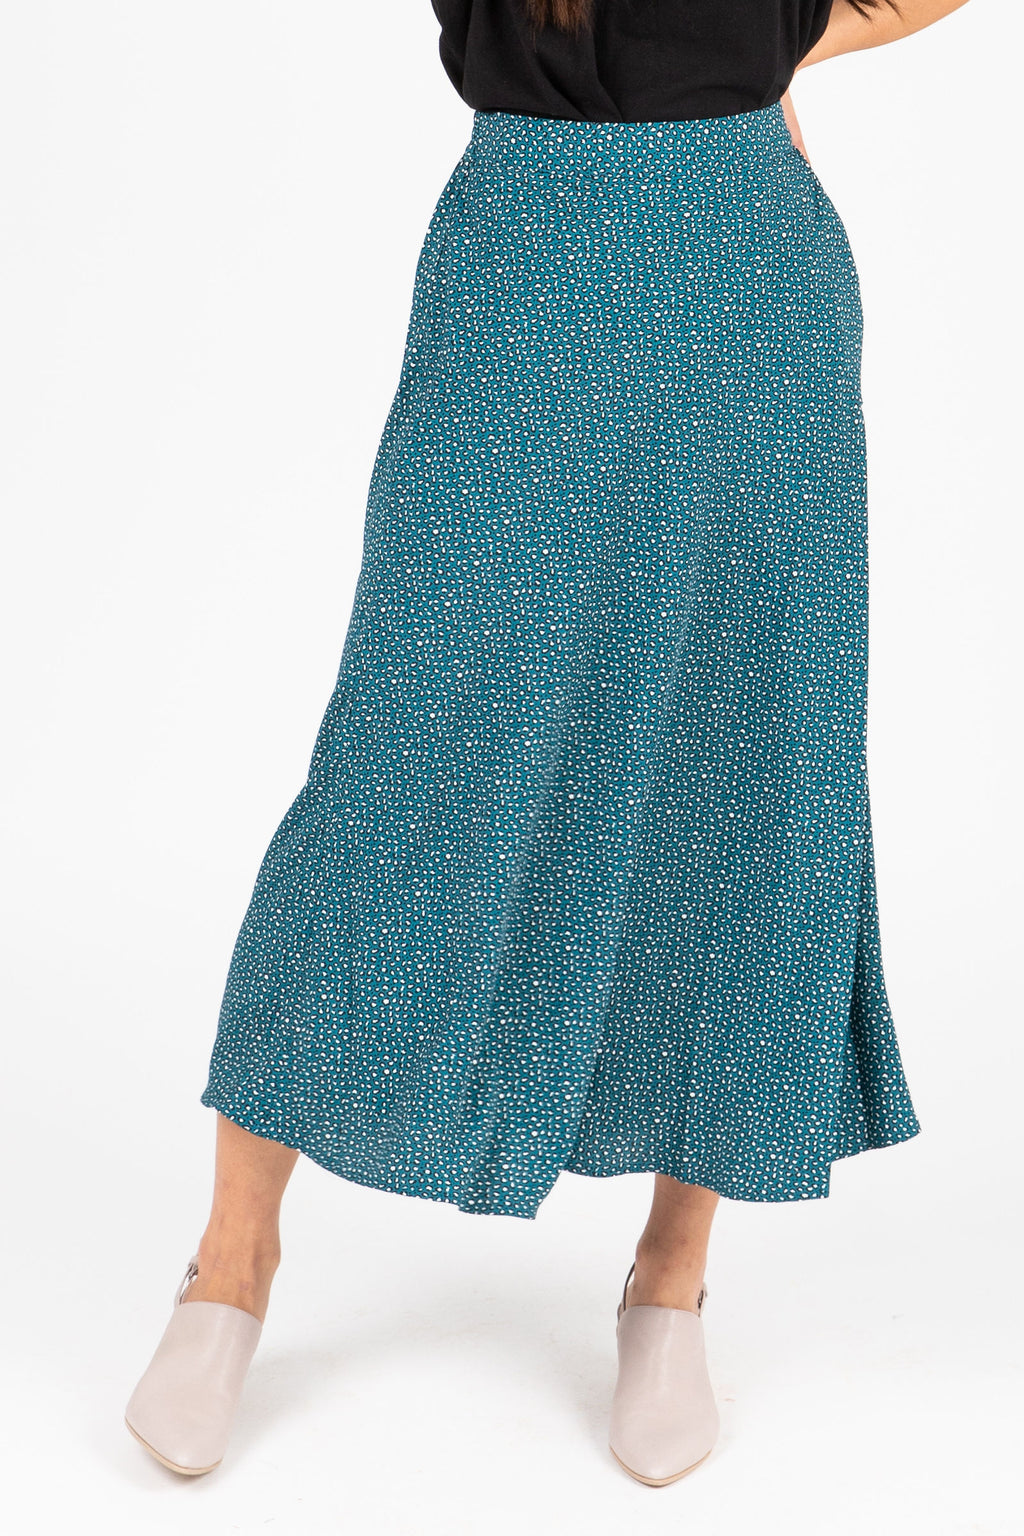 The Avi Patterned Midi Skirt in Blue, studio shoot; front view